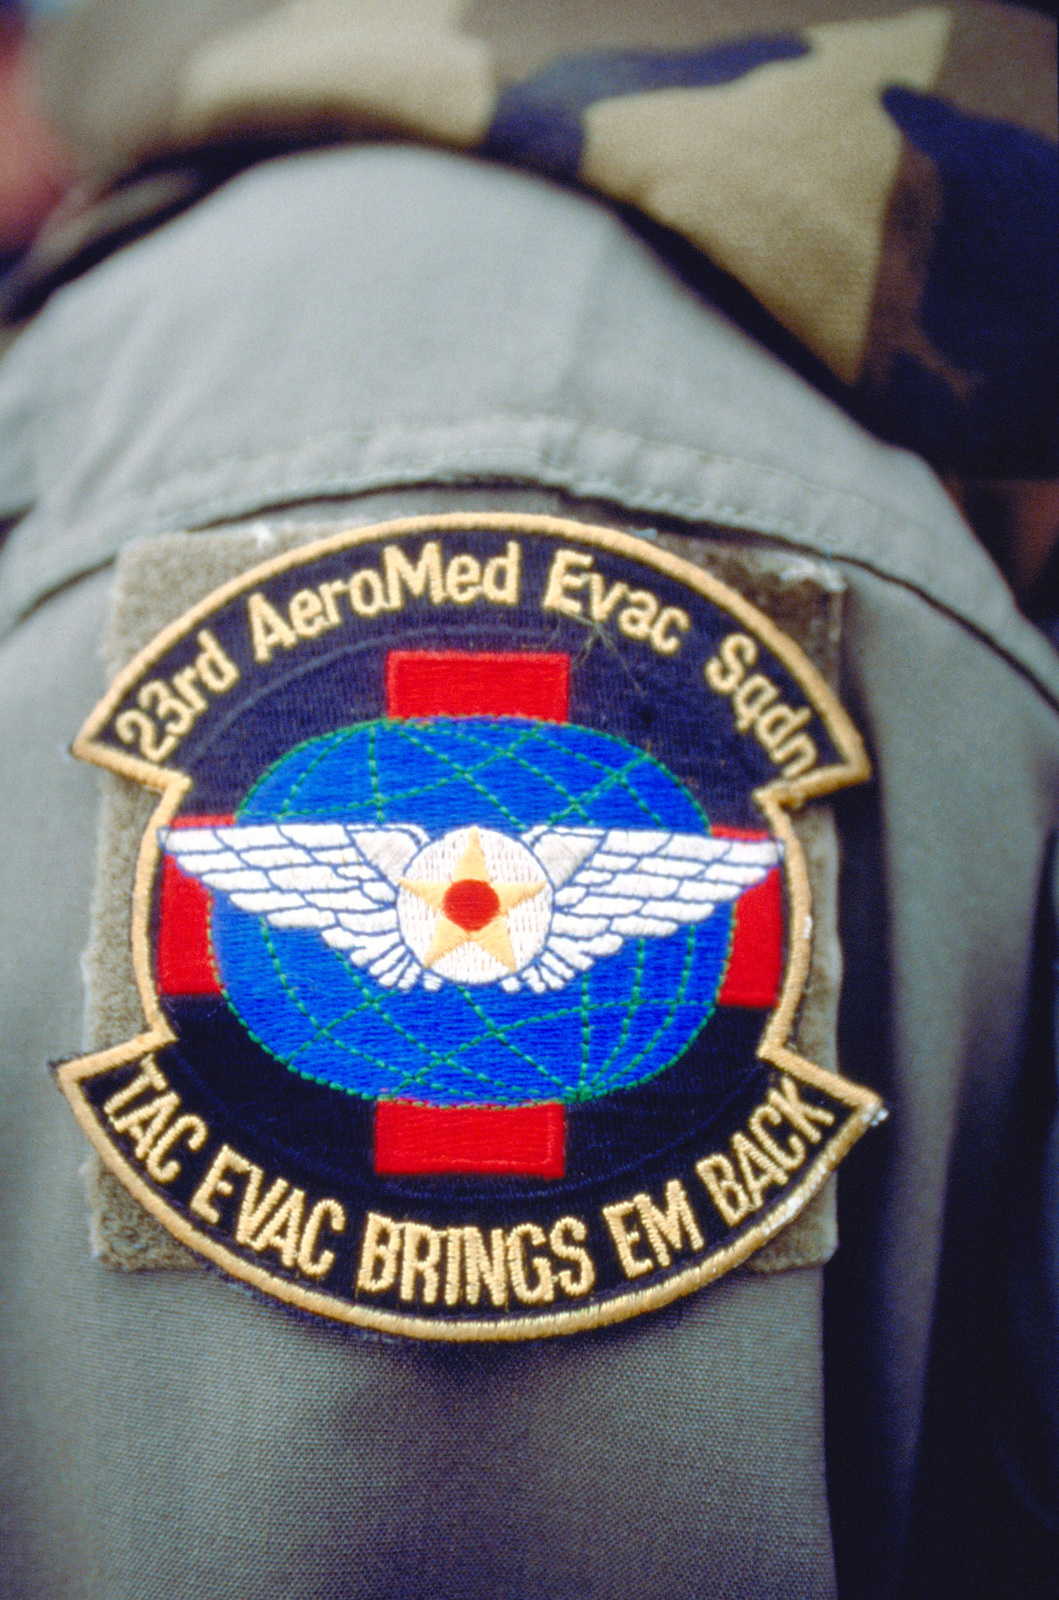 A close-up view of the unit patch for the 23rd Aero-Medical Evacuation Squadron, Pope Air Force Base, North Carolina, who provide 24 hour emergency medical support for Tuzla Air Base, Bosnia while deployed in support of Operation Joint Endeavor